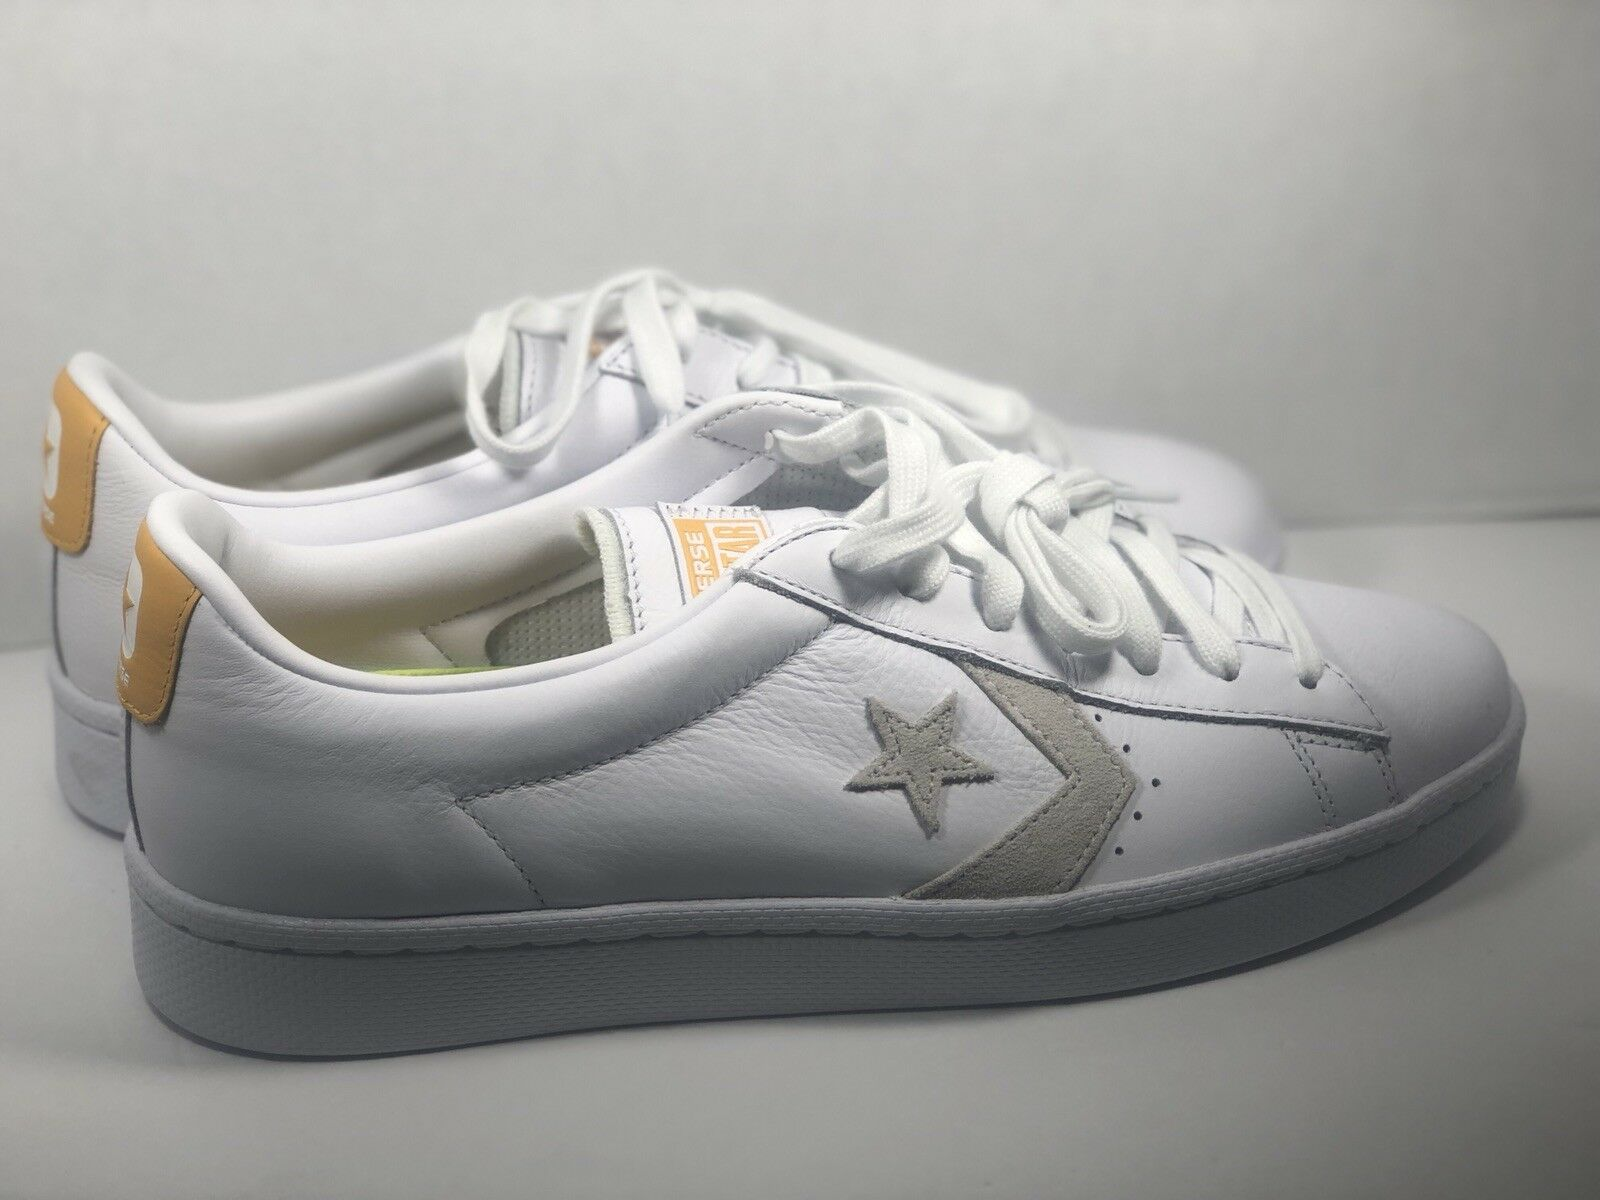 Converse Pro 76 Low Top Leather Basketball Chaussures Taille hommes 10.5